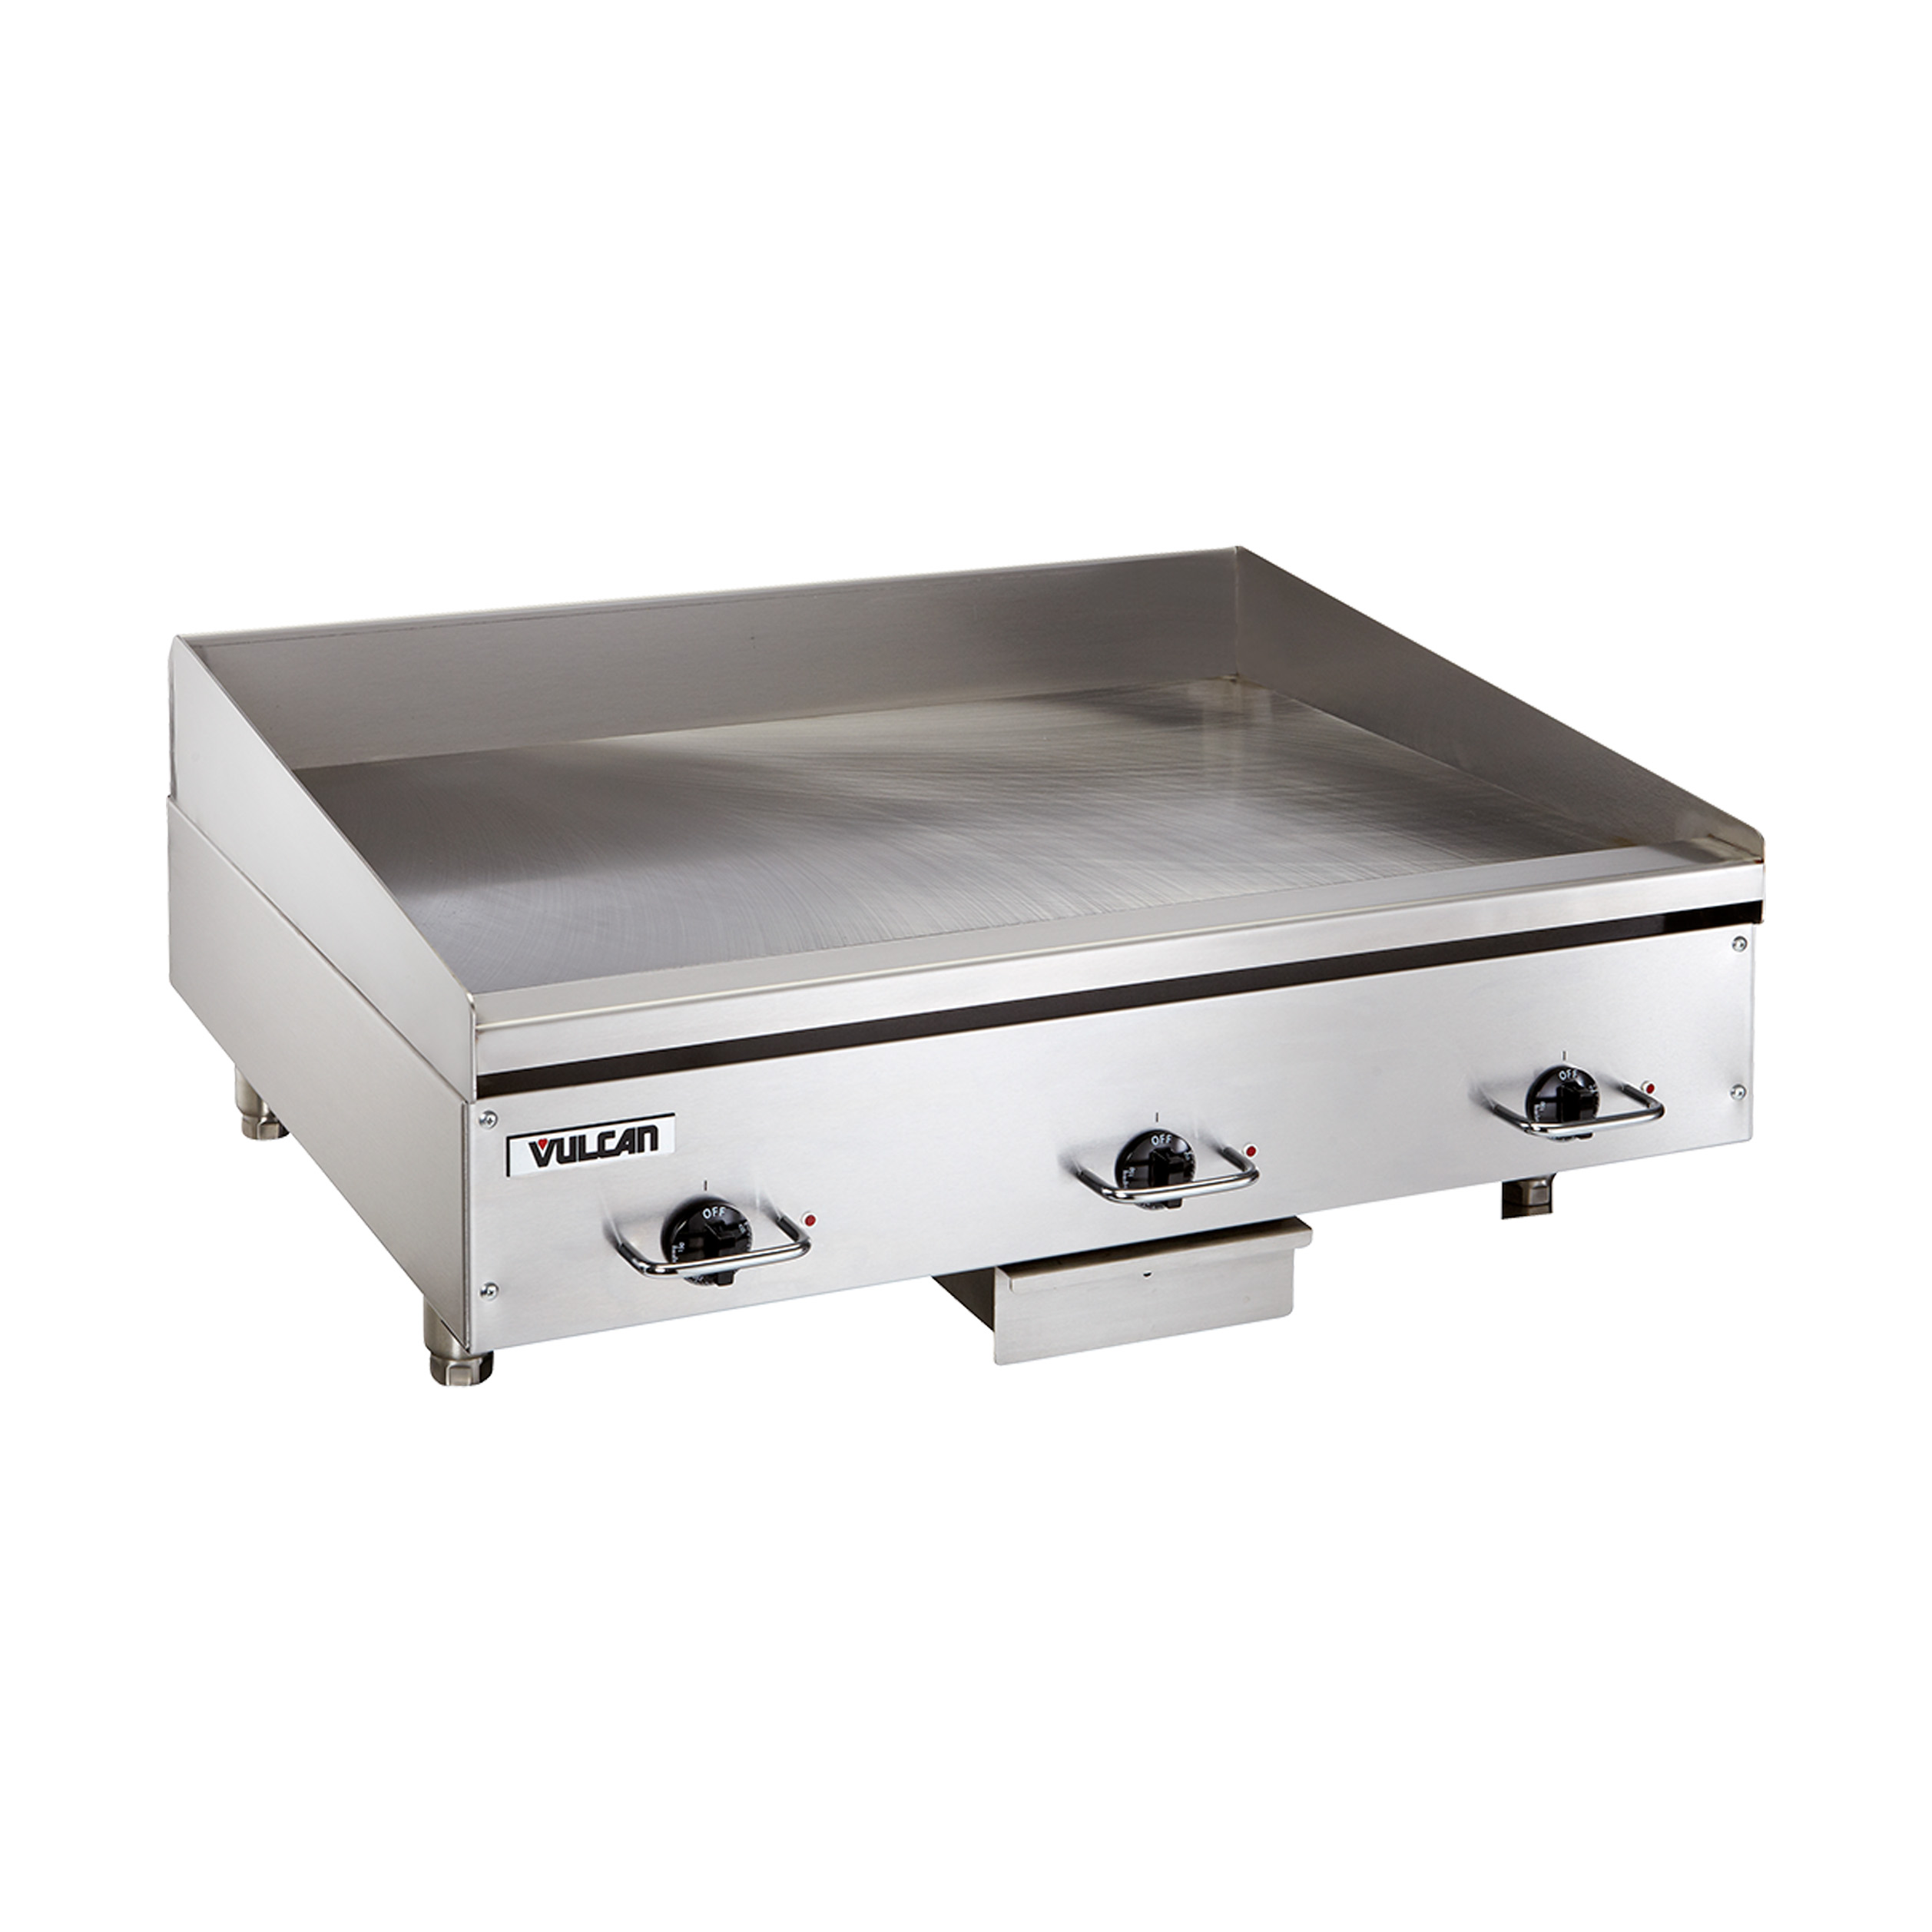 Vulcan HEG24E griddle, electric, countertop